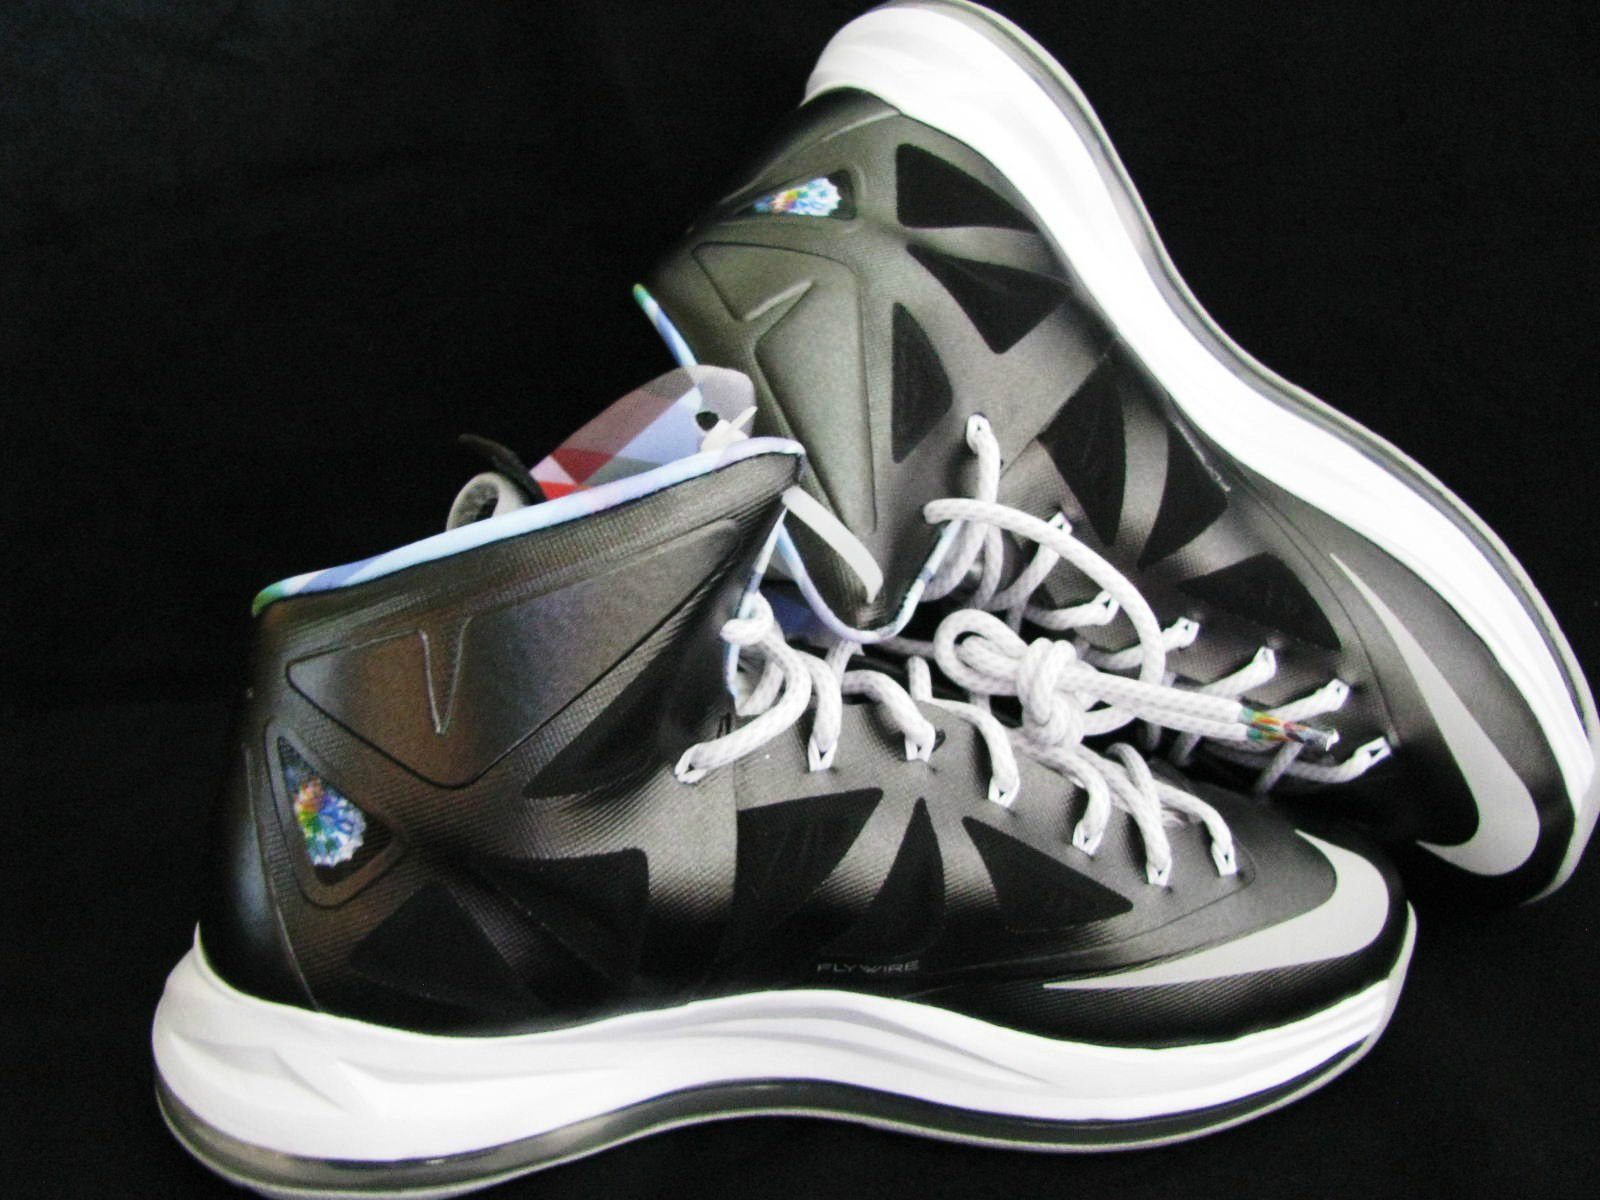 0dad1d1fde1 ... where to buy mens nike lebron x 10 prism basketball shoe 12 newlimited  release541100 004 streetwear